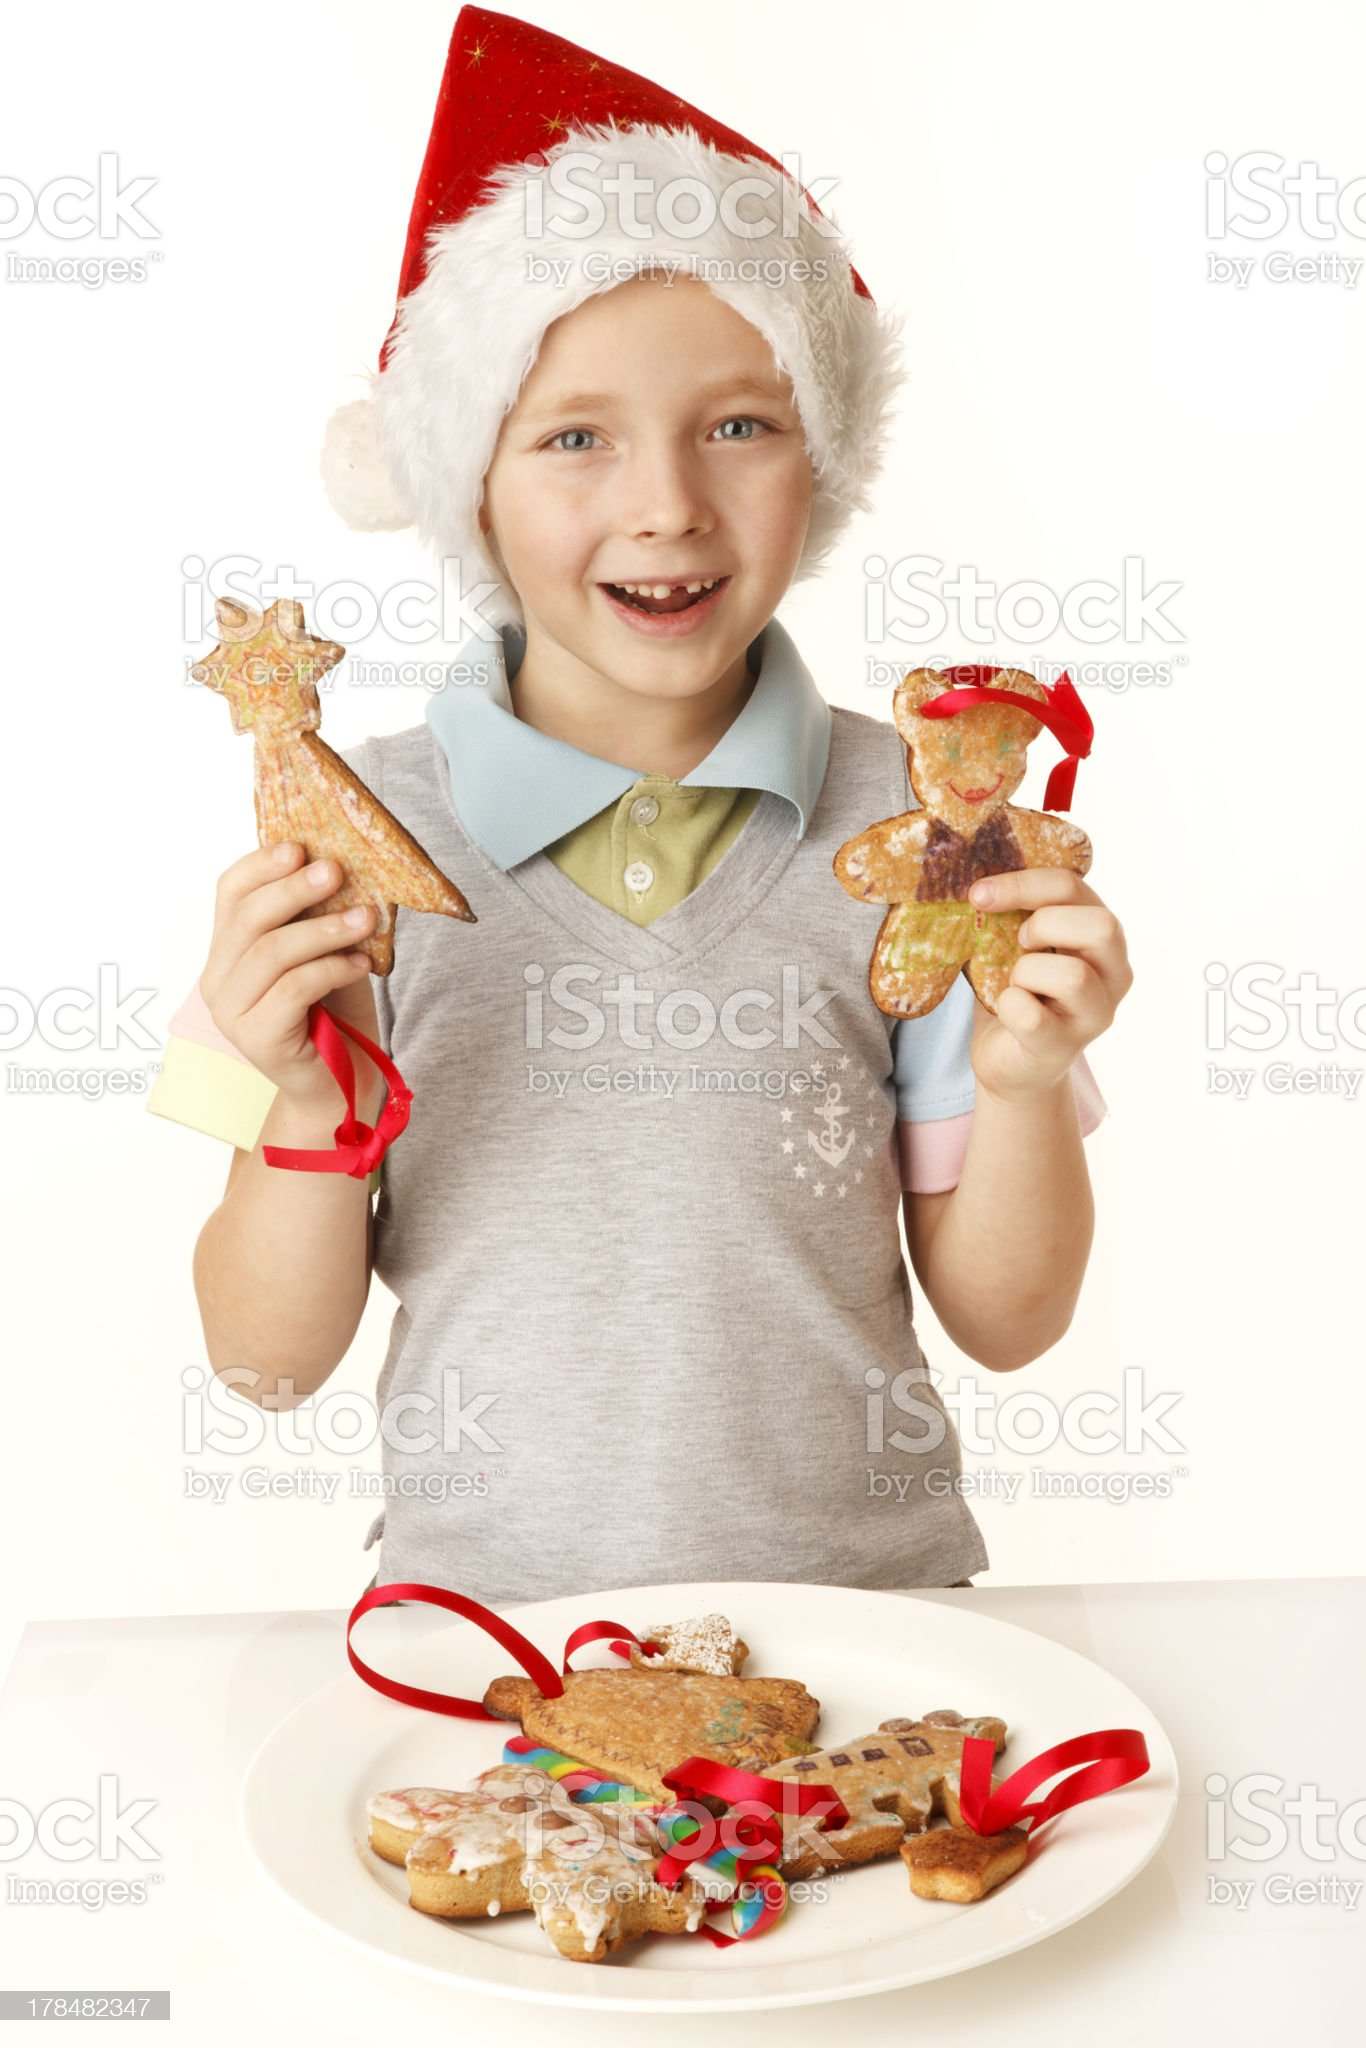 Holding macaroons royalty-free stock photo